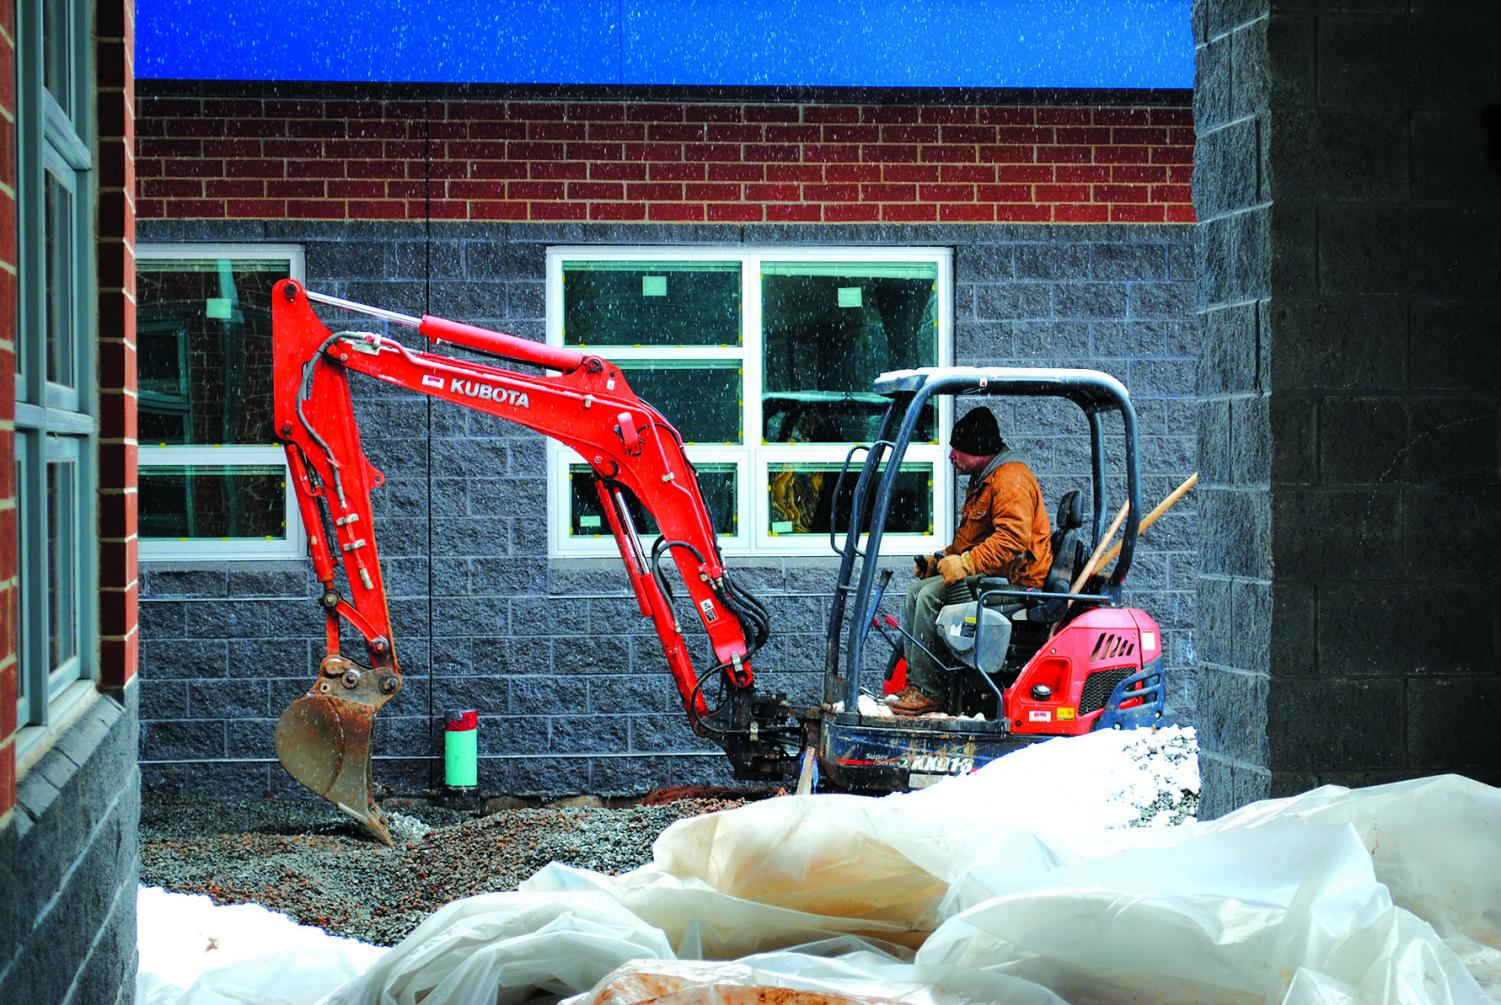 Construction+crews+work+on+the+addition+to+the+band+room+with+a+backhoe+during+a+snow+flurry+over+the+winter.+